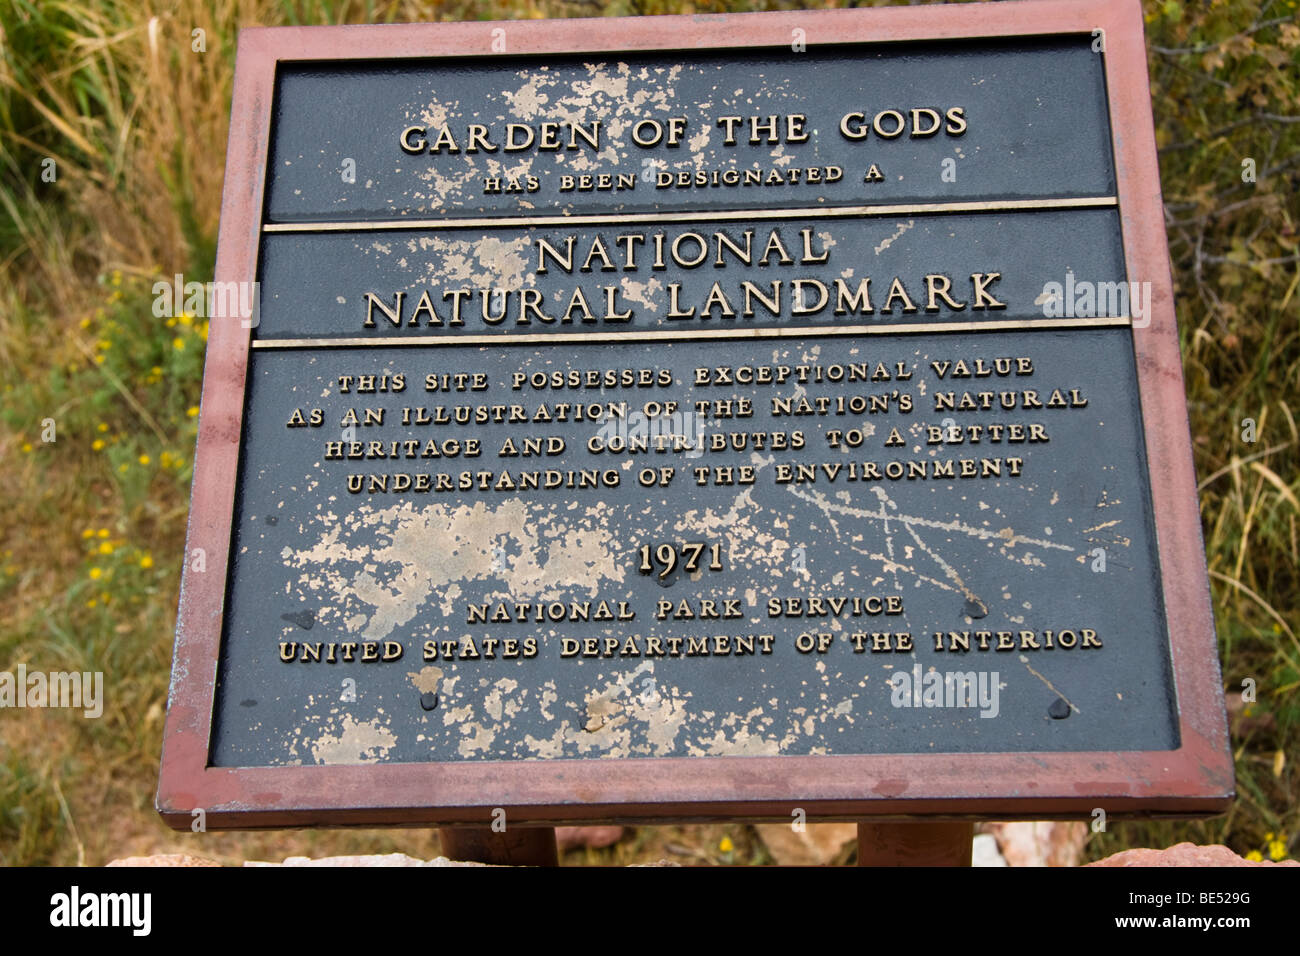 Garden of the Gods, National Natural Landmark sign, Colorado, USA - Stock Image